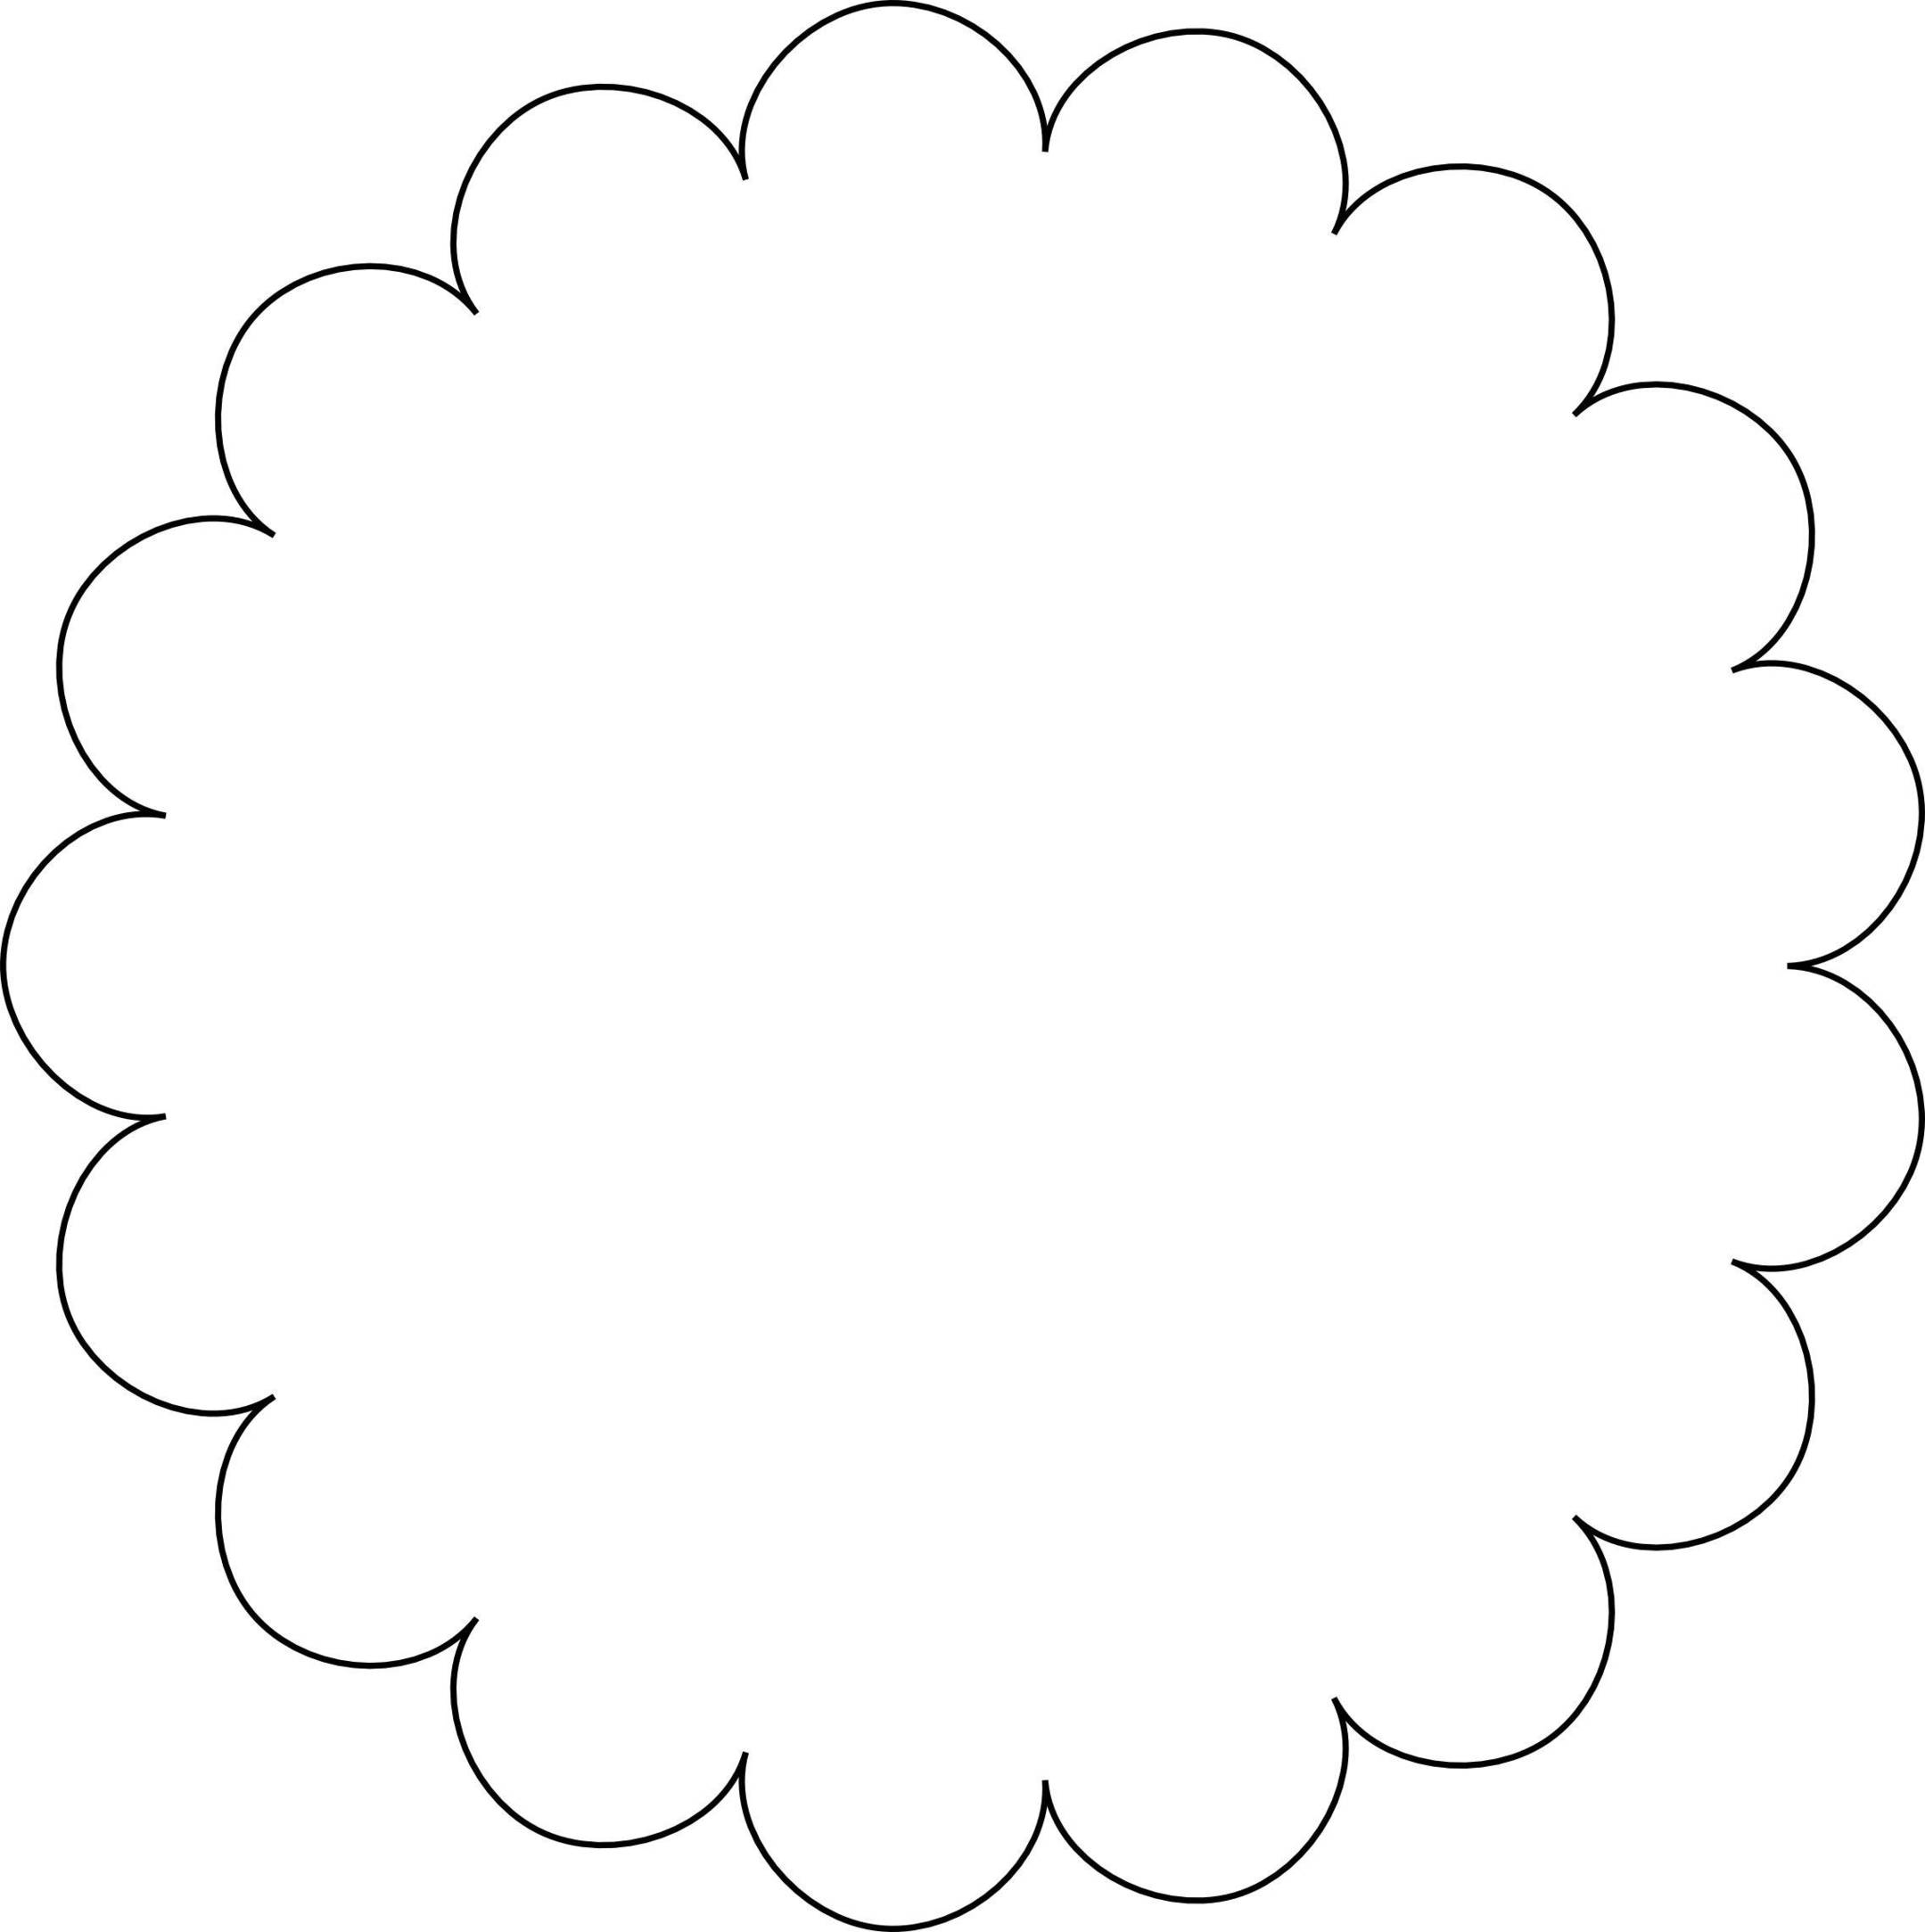 Scallop shape clipart banner free stock Free Scallop Border Cliparts, Download Free Clip Art, Free ... banner free stock